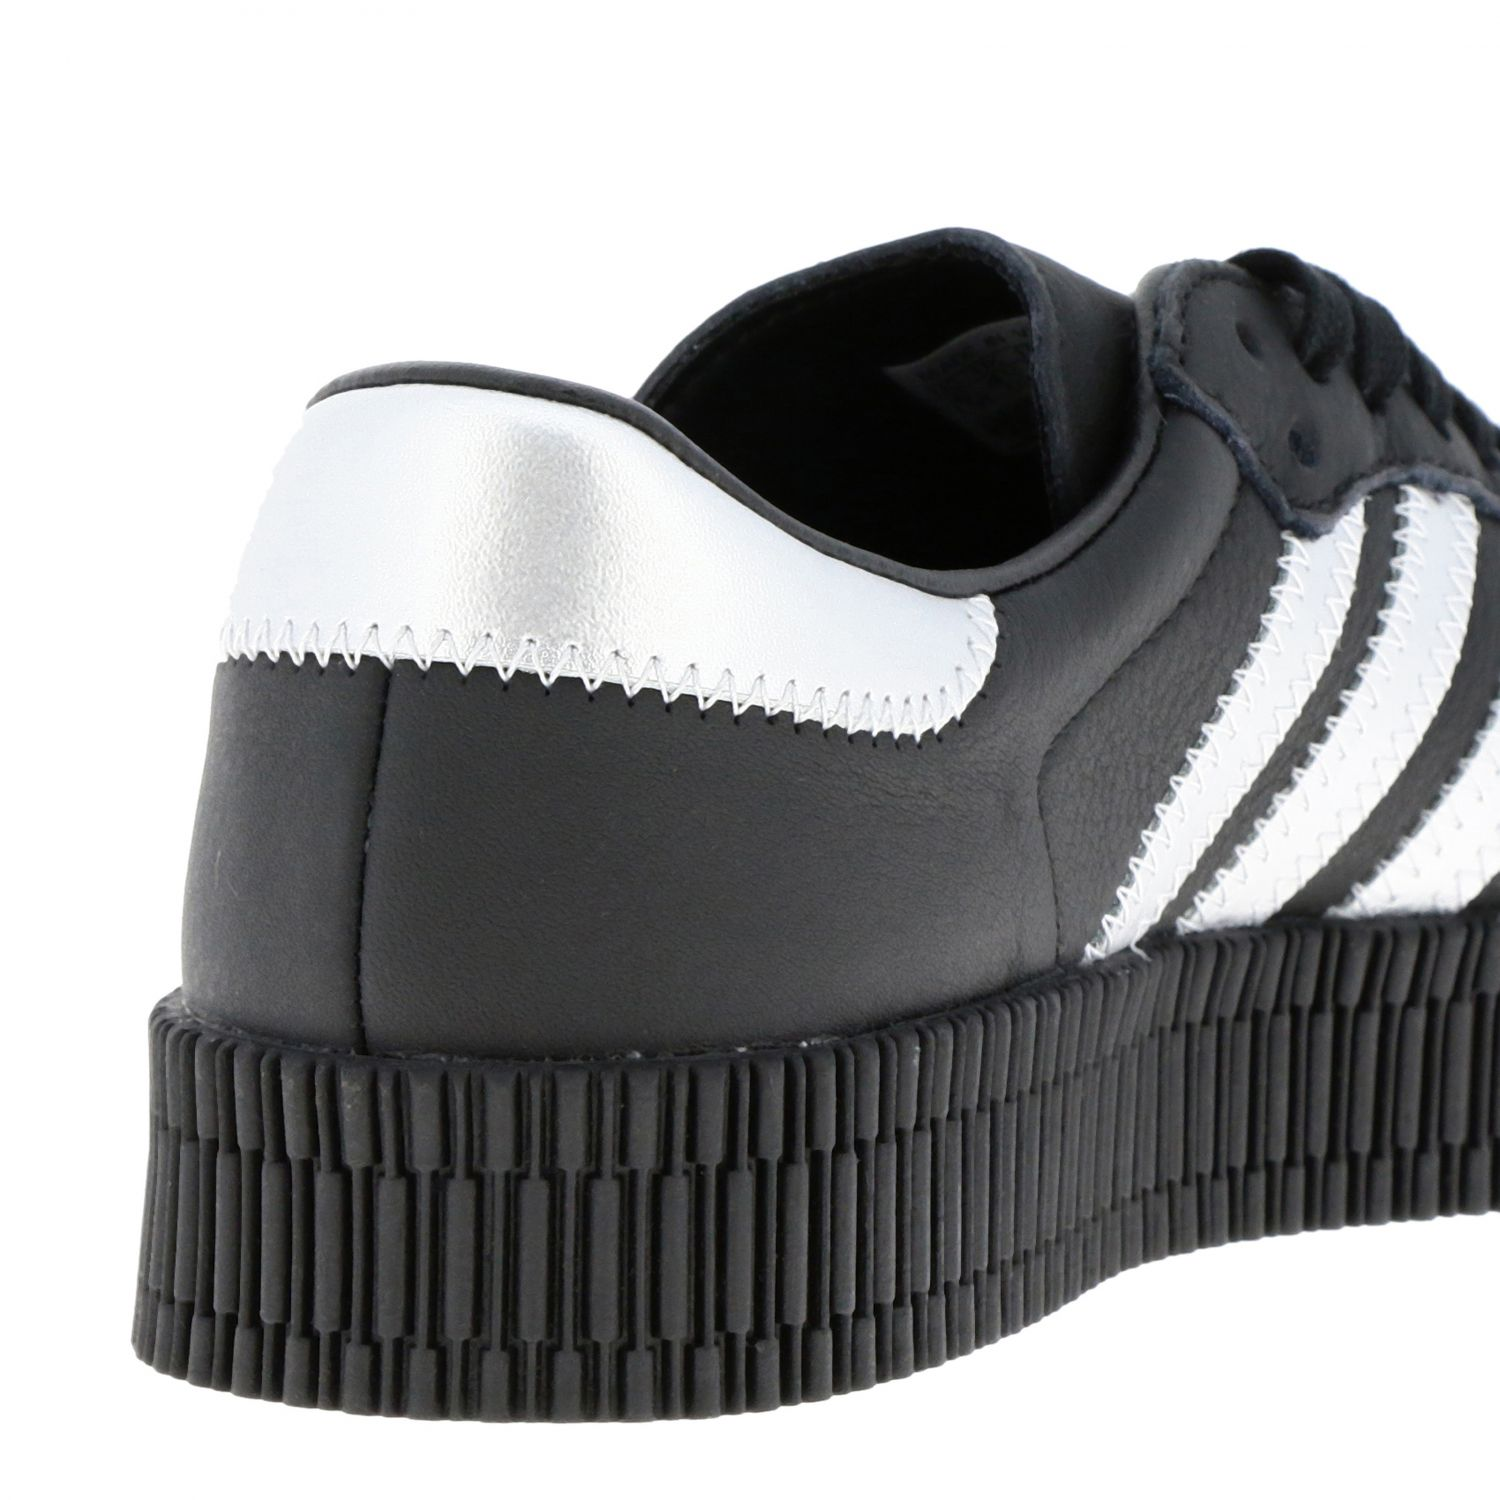 Sneakers Adidas Originals: Adidas Samba Originals By Pharrell Williams sneakers in smooth and laminated leather black 4